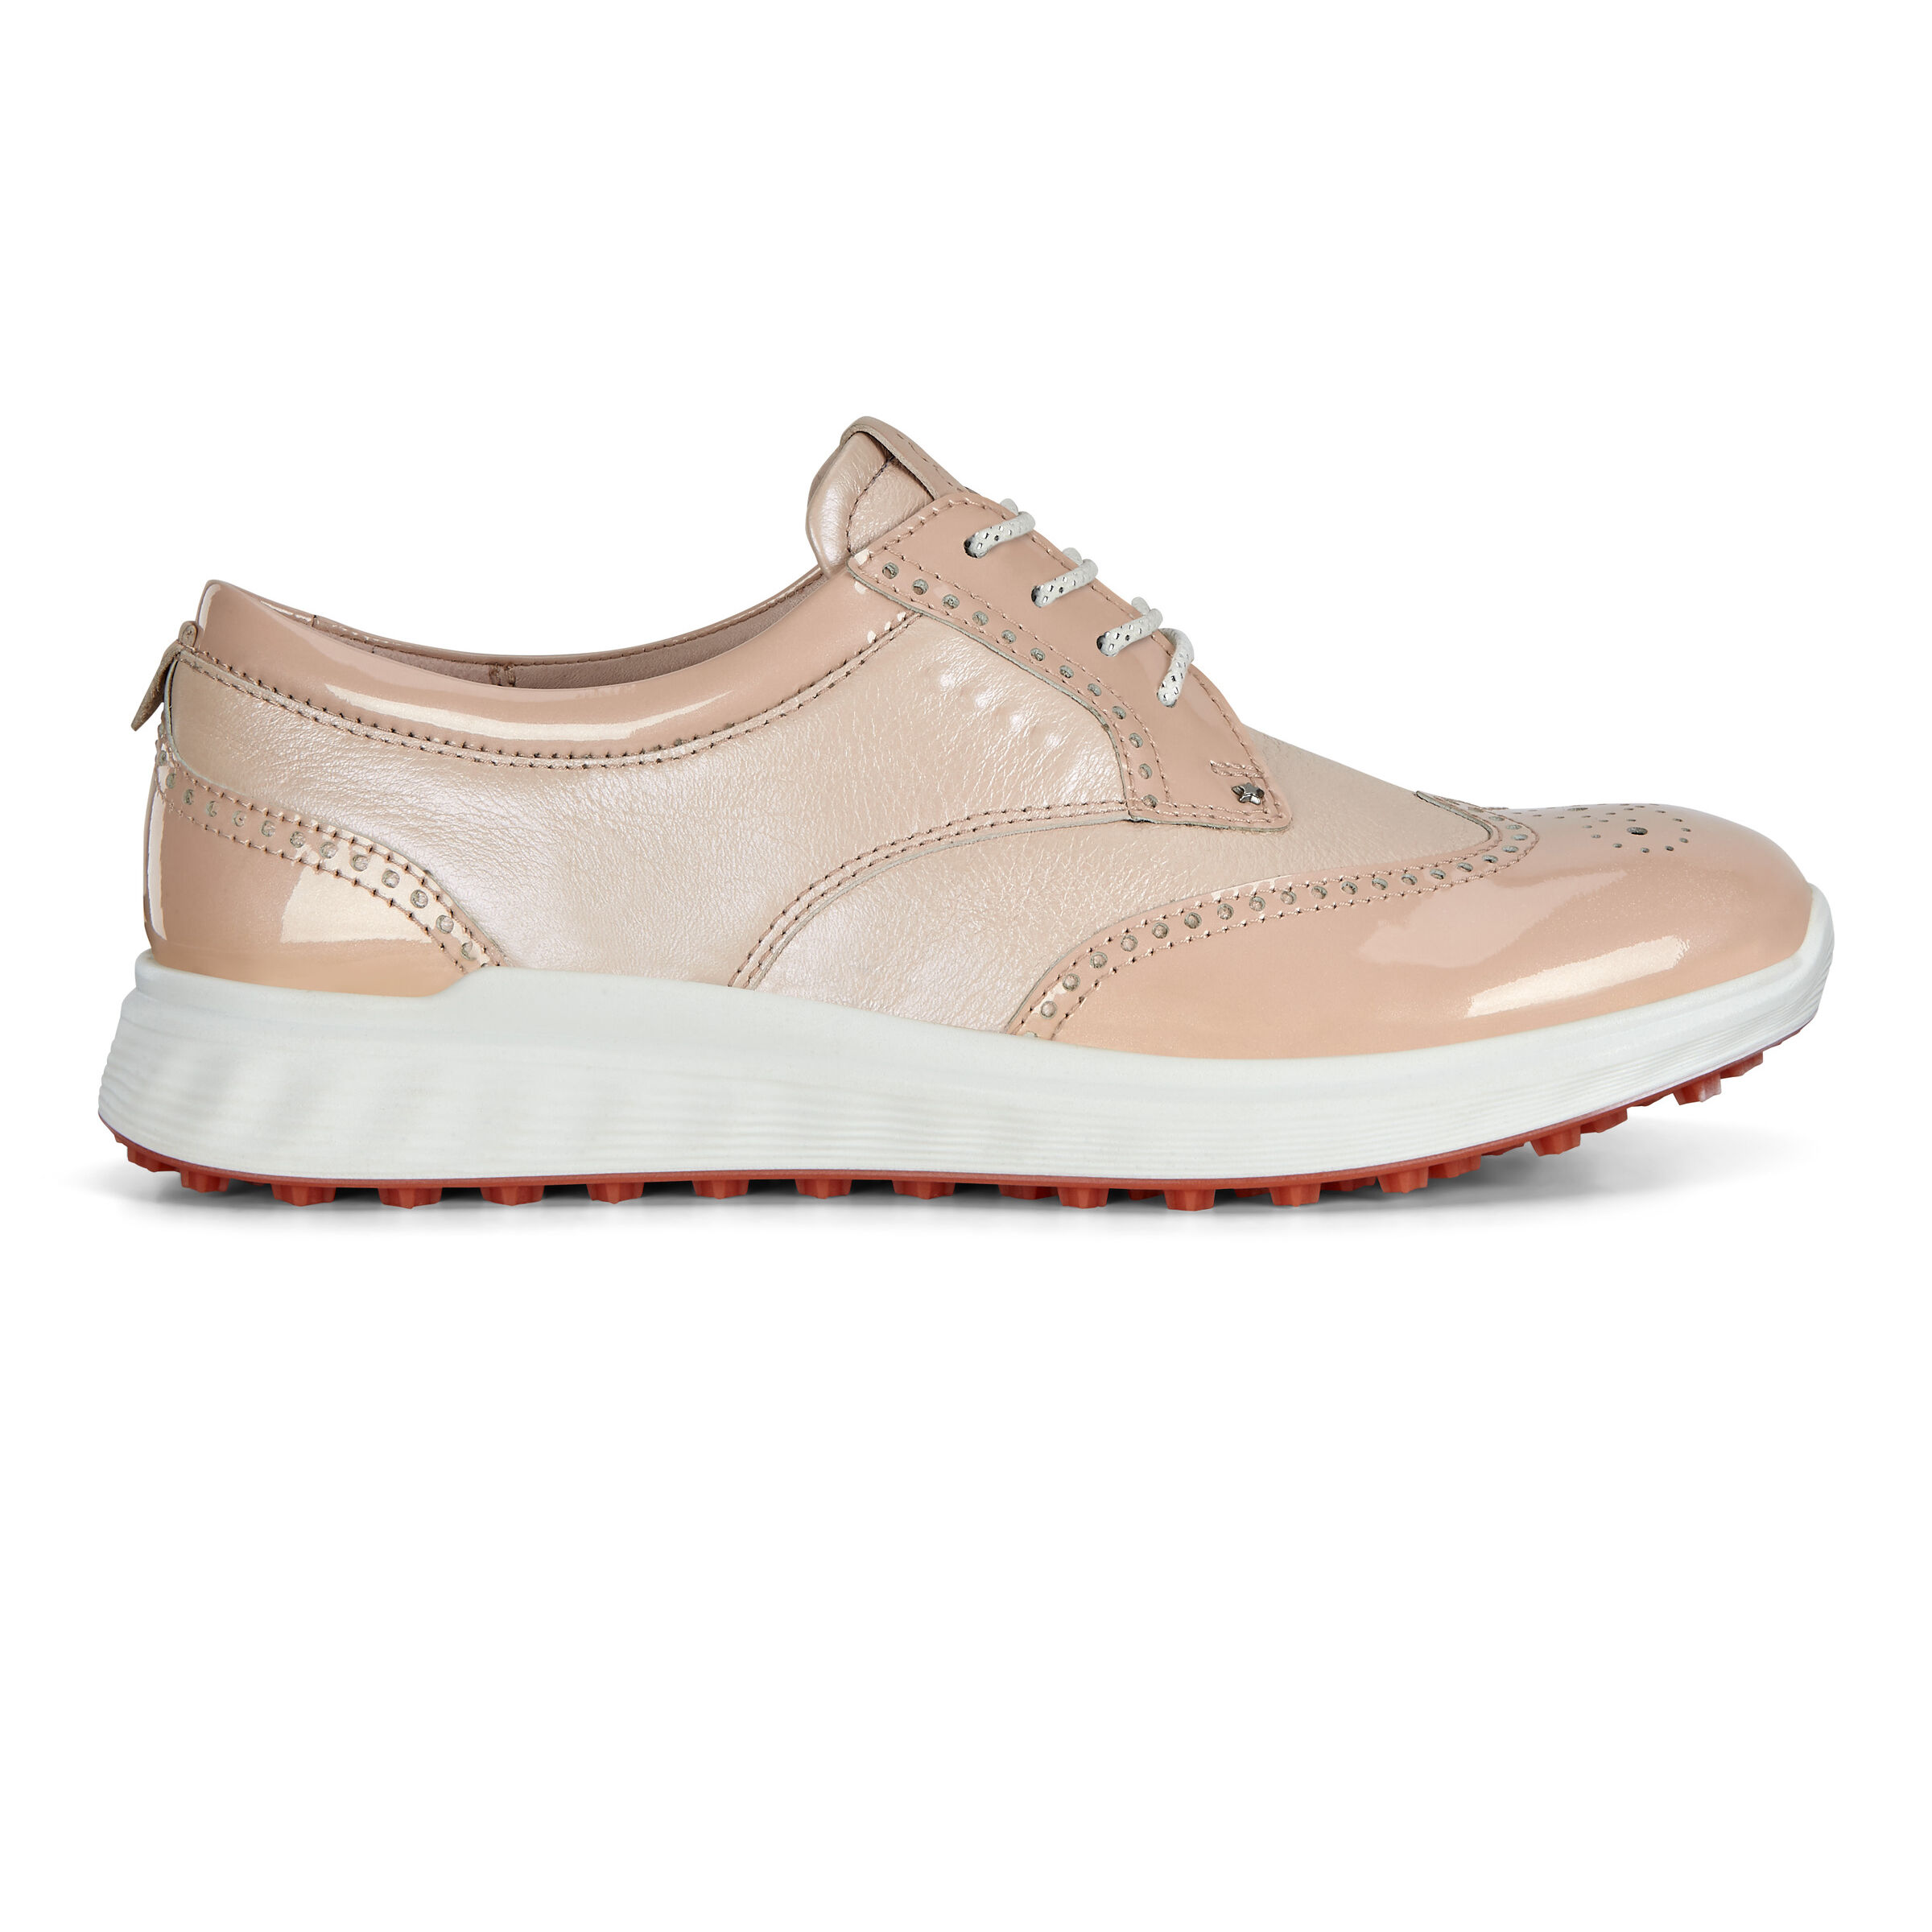 ECCO Womens Spikeless Golf S-classic Shoes